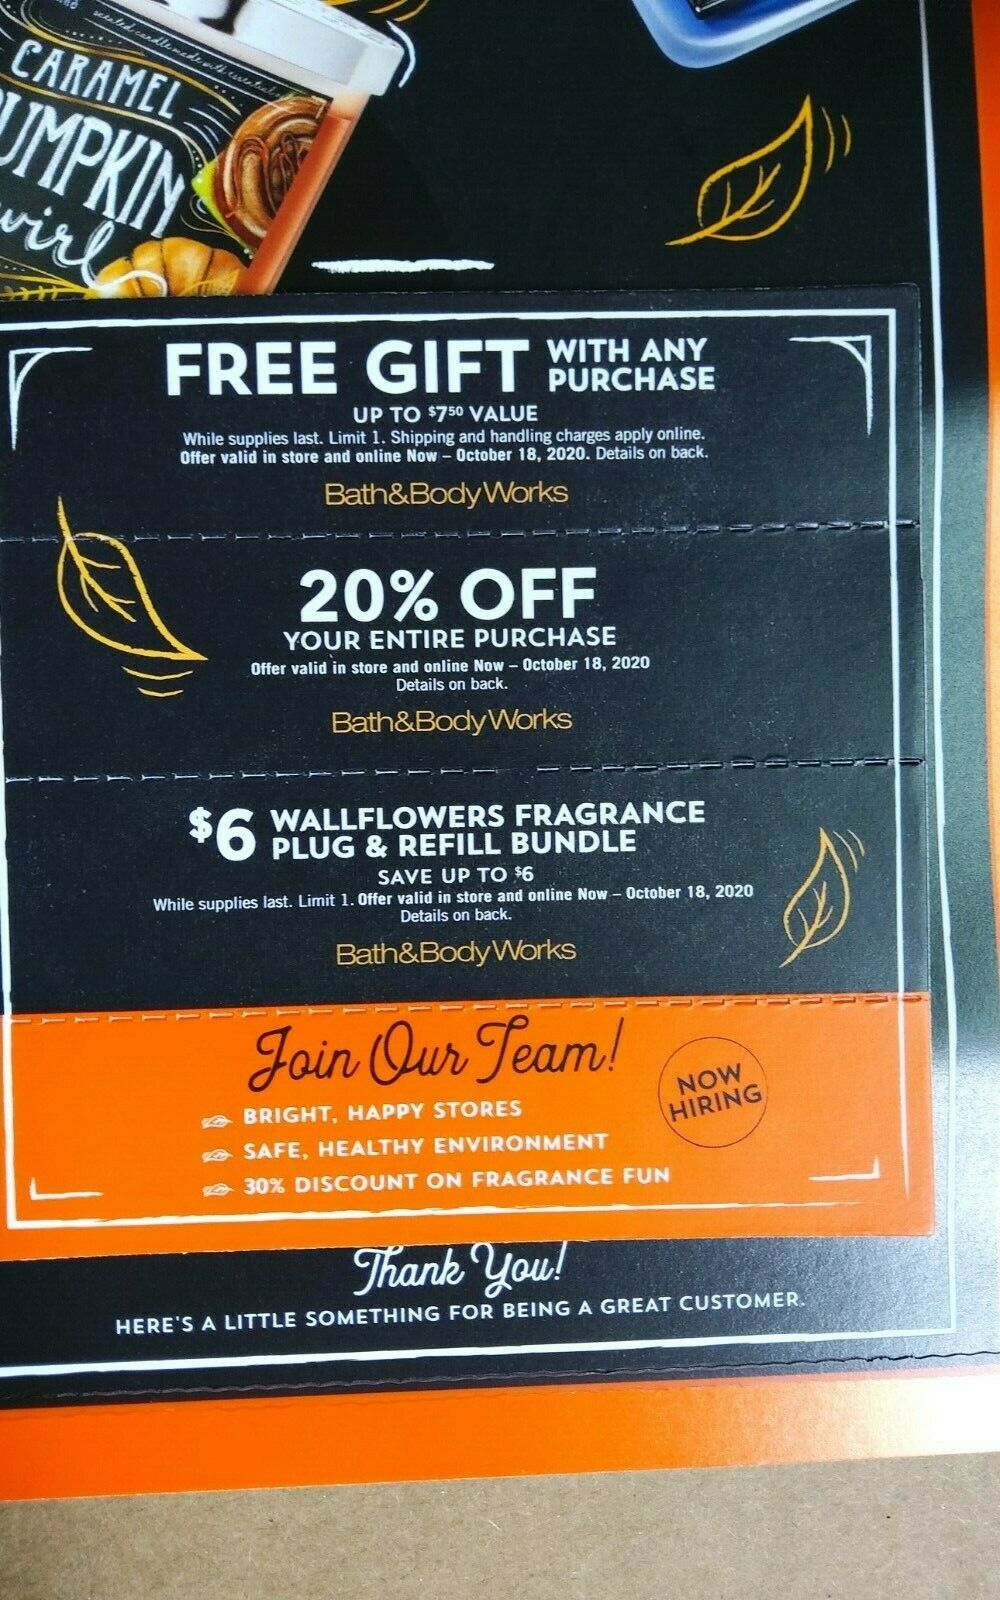 Bath And Body Works Coupons 3 - Gift 20 Off 11 Candle - Exp 10/18/20 - $11.00